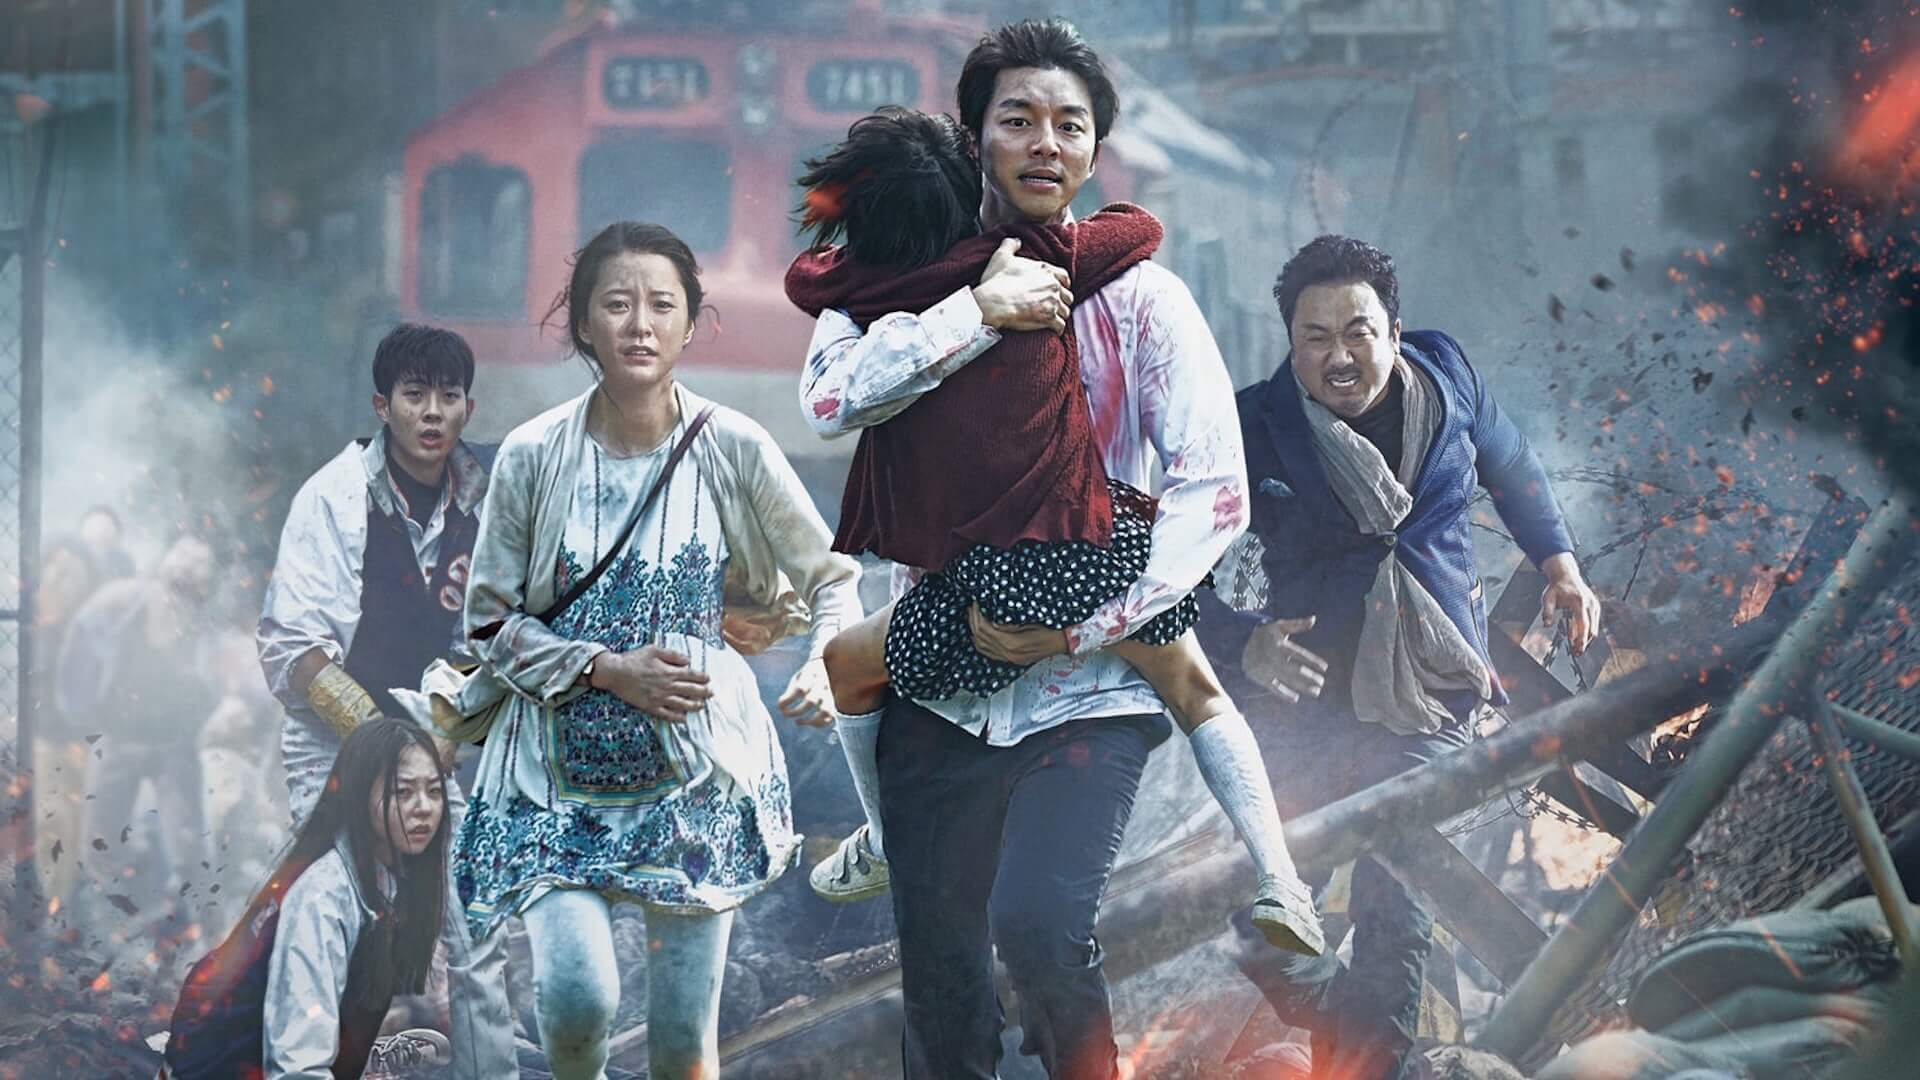 james wan train to busan.jpg